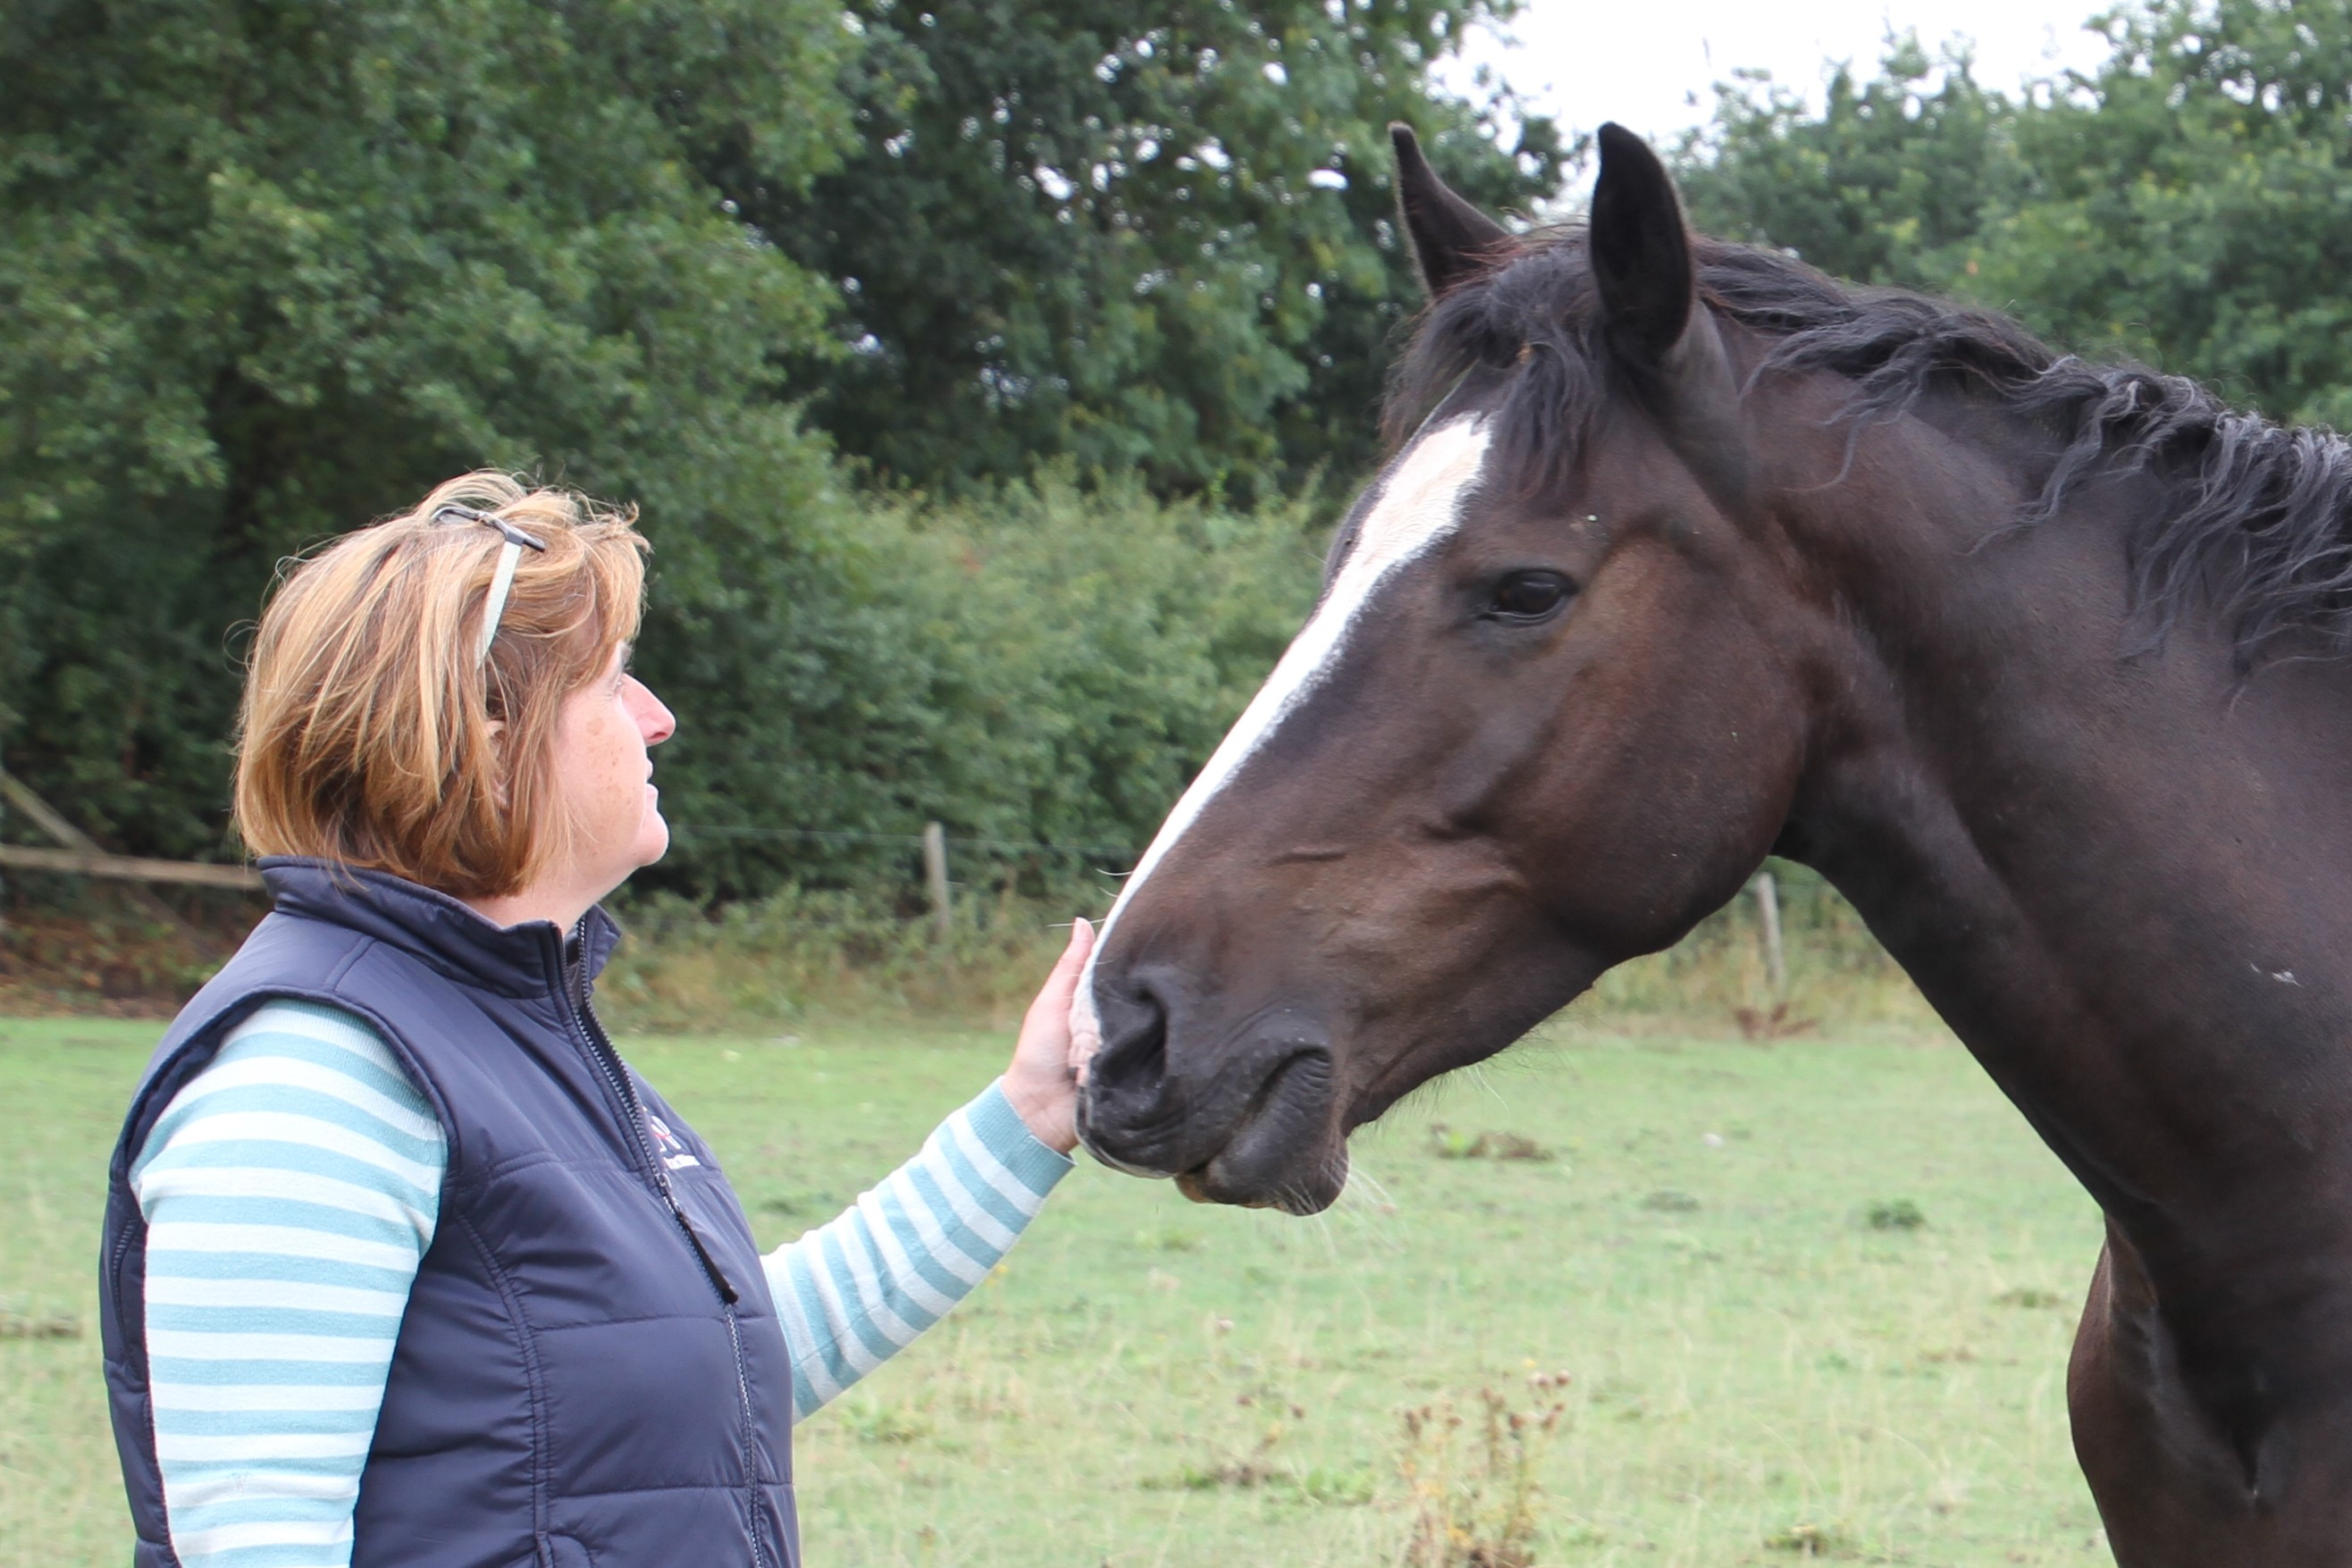 Midlands Riding Centre to Launch Confidence and Wellbeing Coaching using the Natural Herd Instincts of Horses